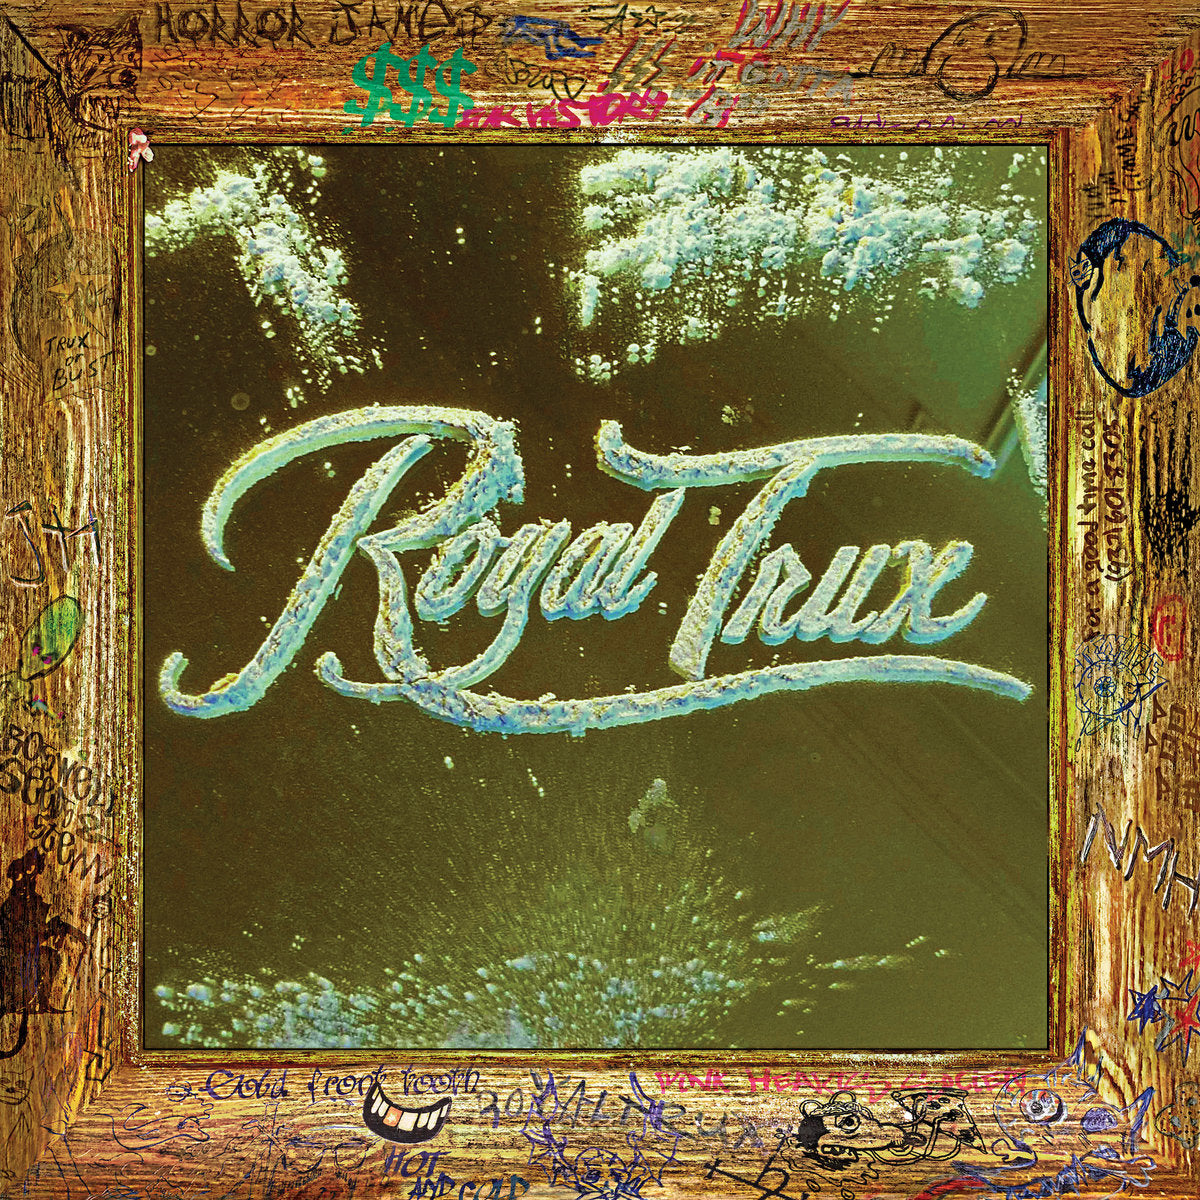 Royal Trux - White Stuff LP (Champion Pizza Vinyl Edition)